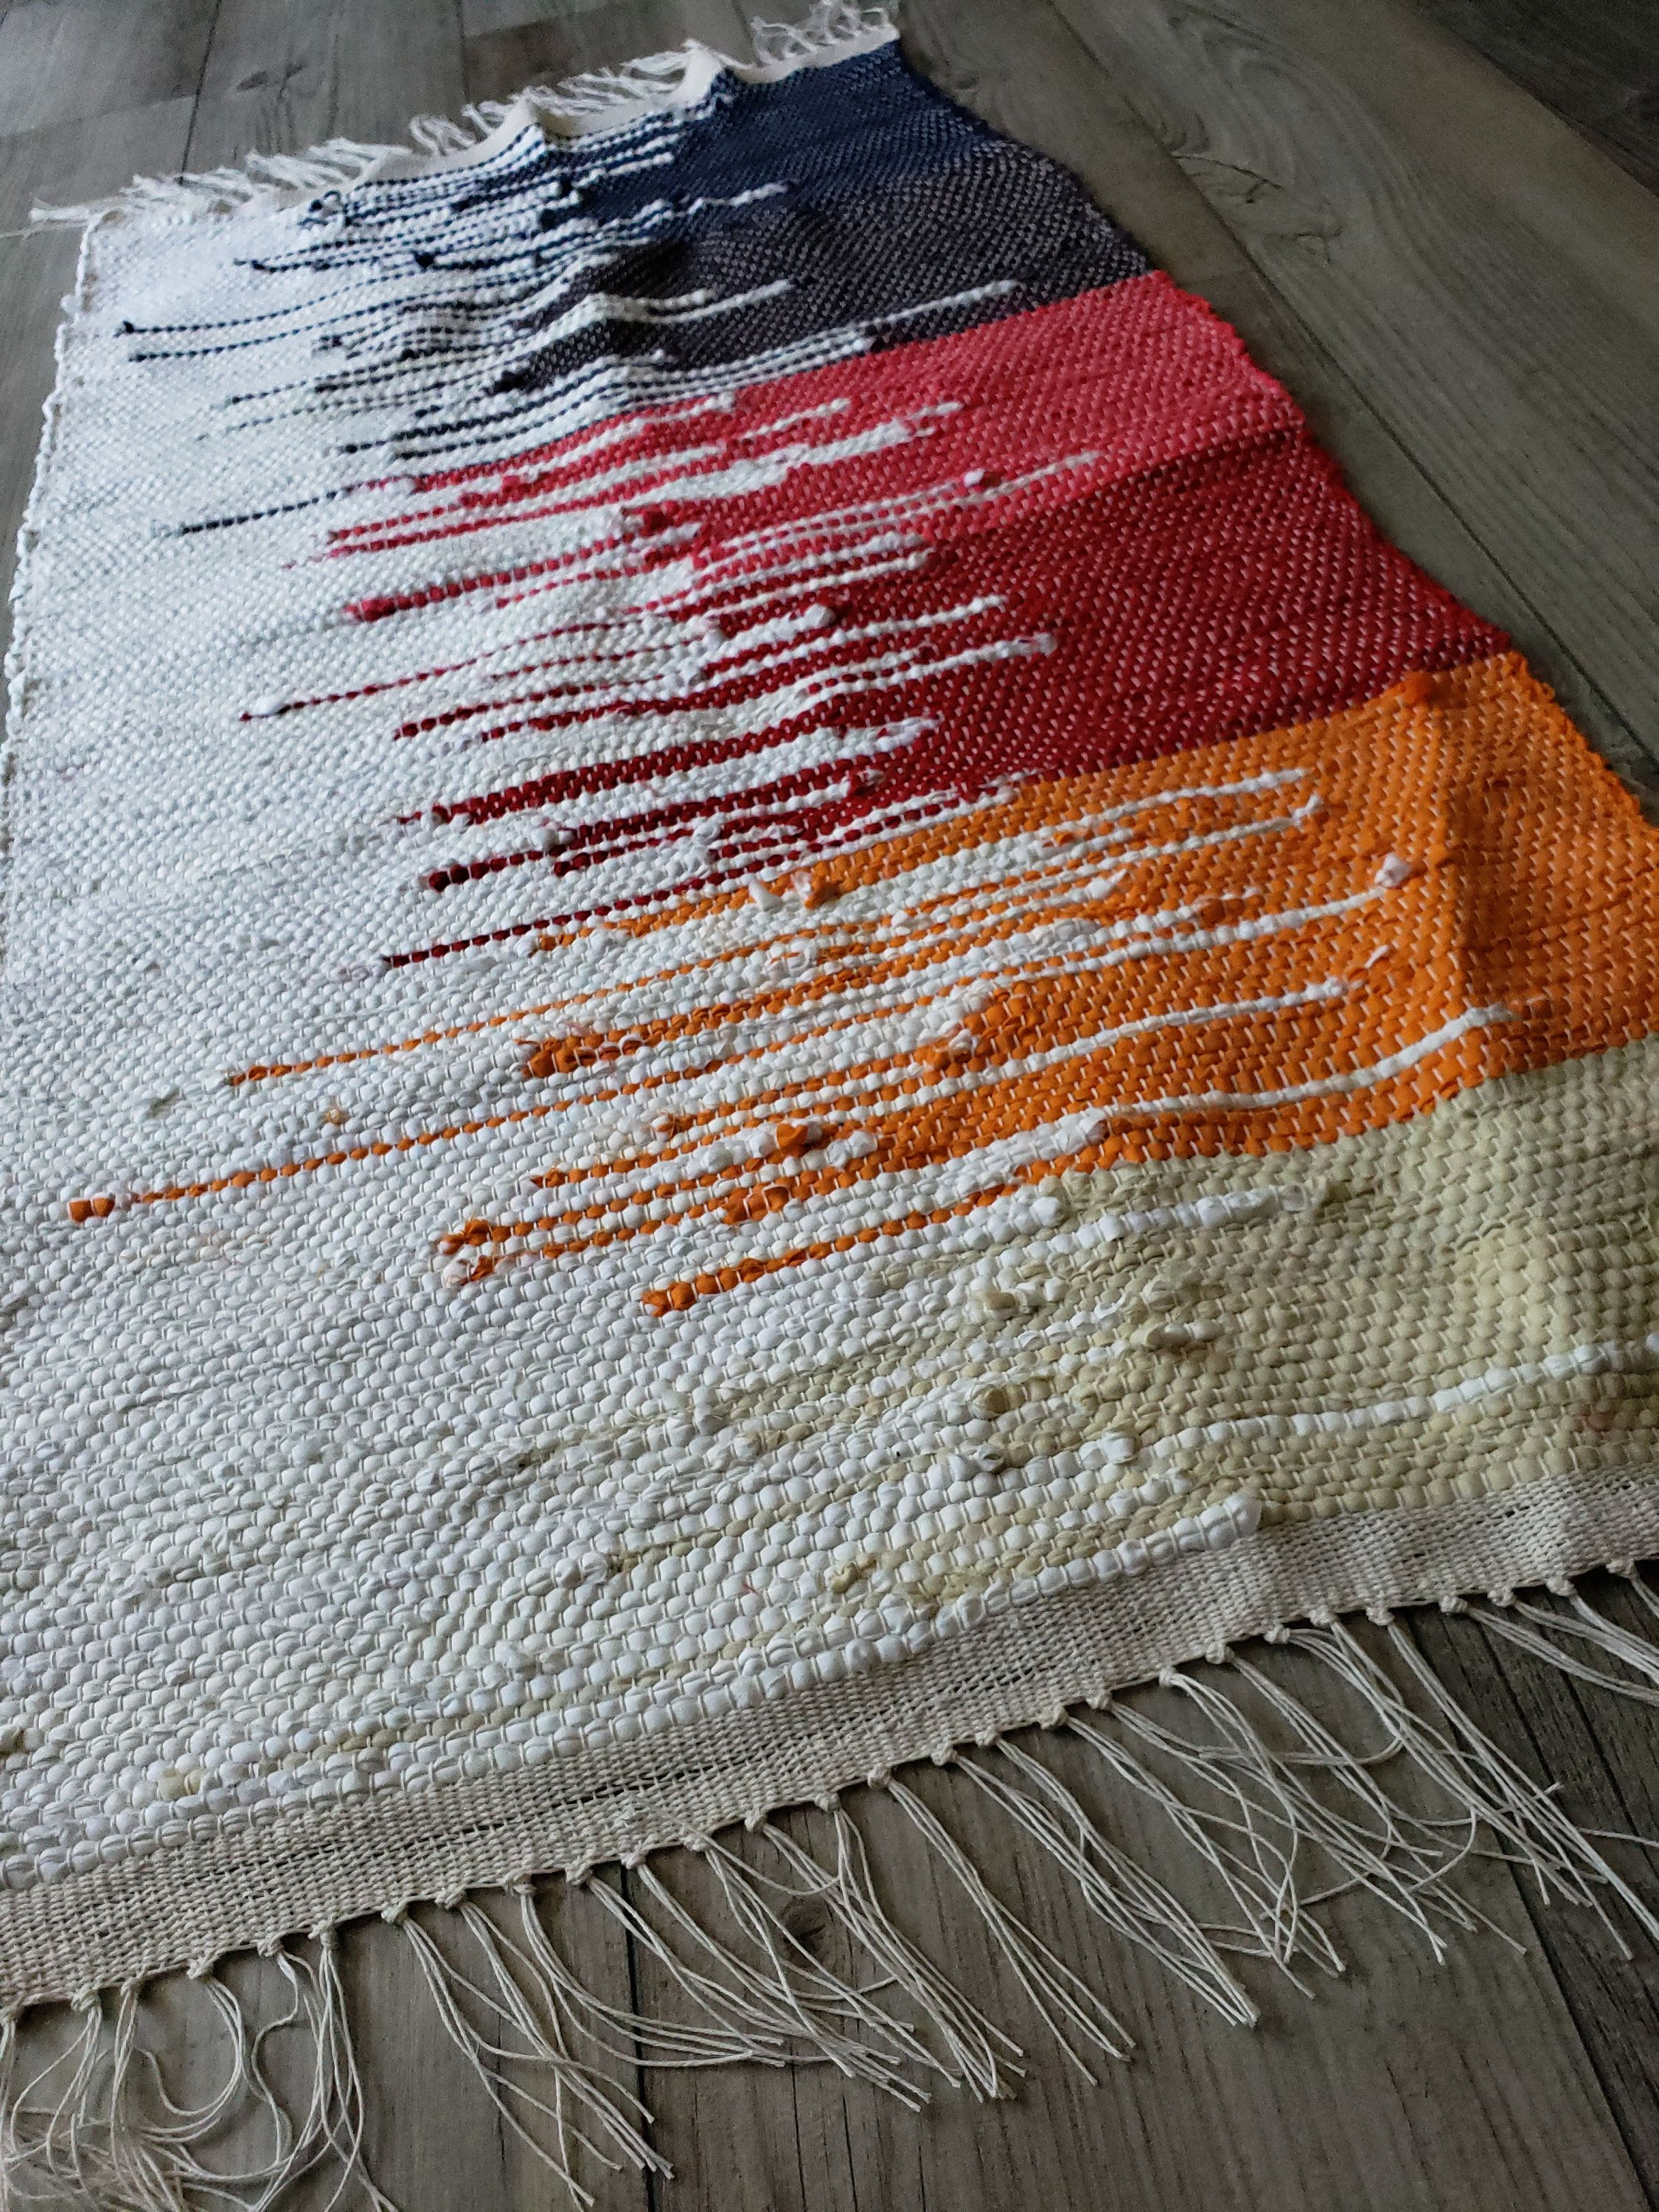 Rainbow Clasped In White Handwoven Rag Rug A Handwoven Masterpiece With An Ecofriendly Feel Etsy Etsyseller Upcycleddecor Rag Rug Handwoven Rugs Diy Rug